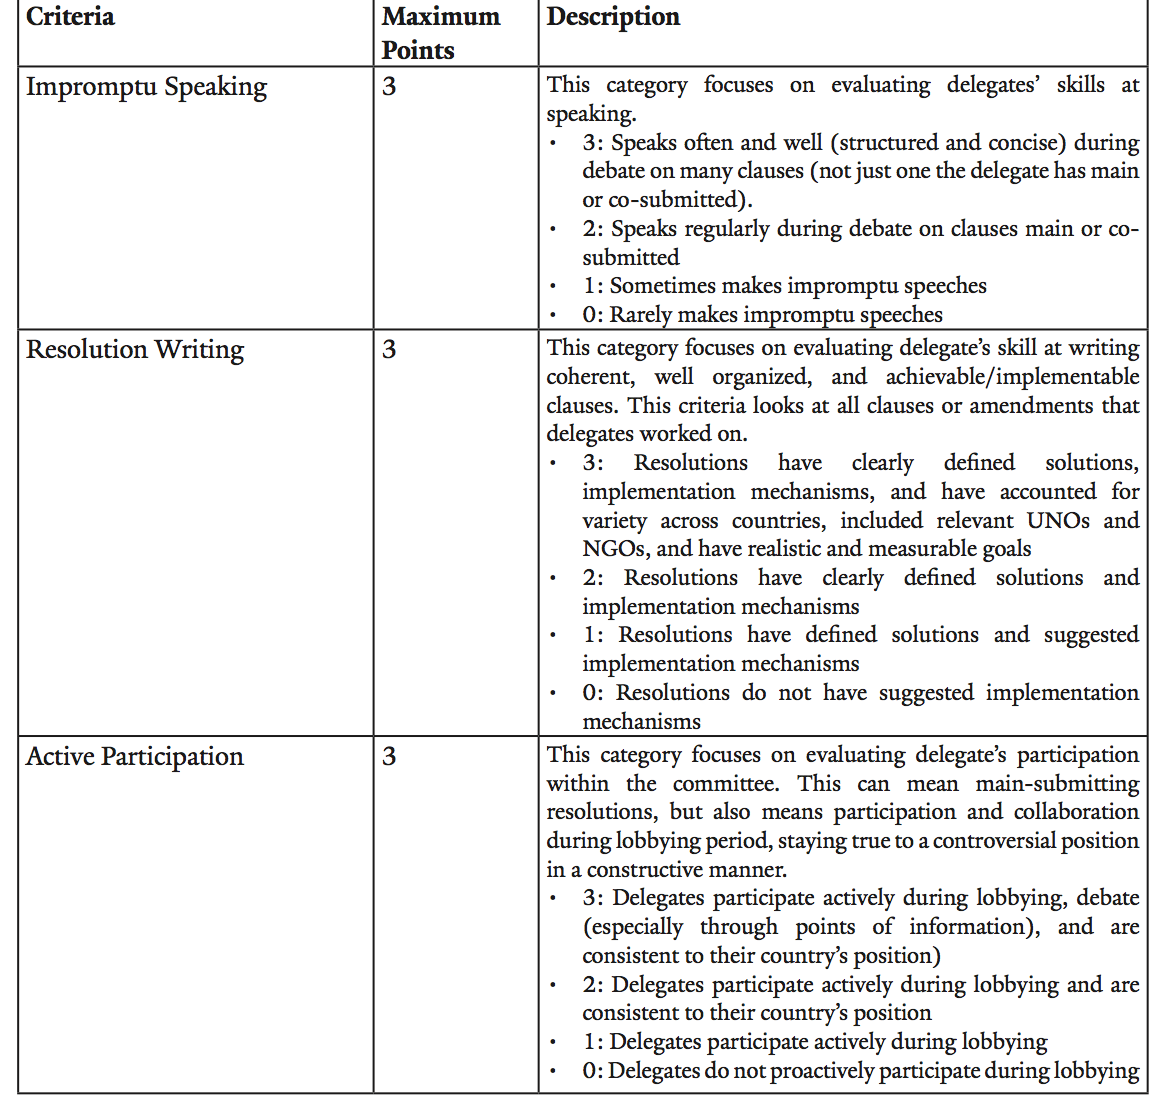 General Rubric used by chairs to evaluate individual delegate performance